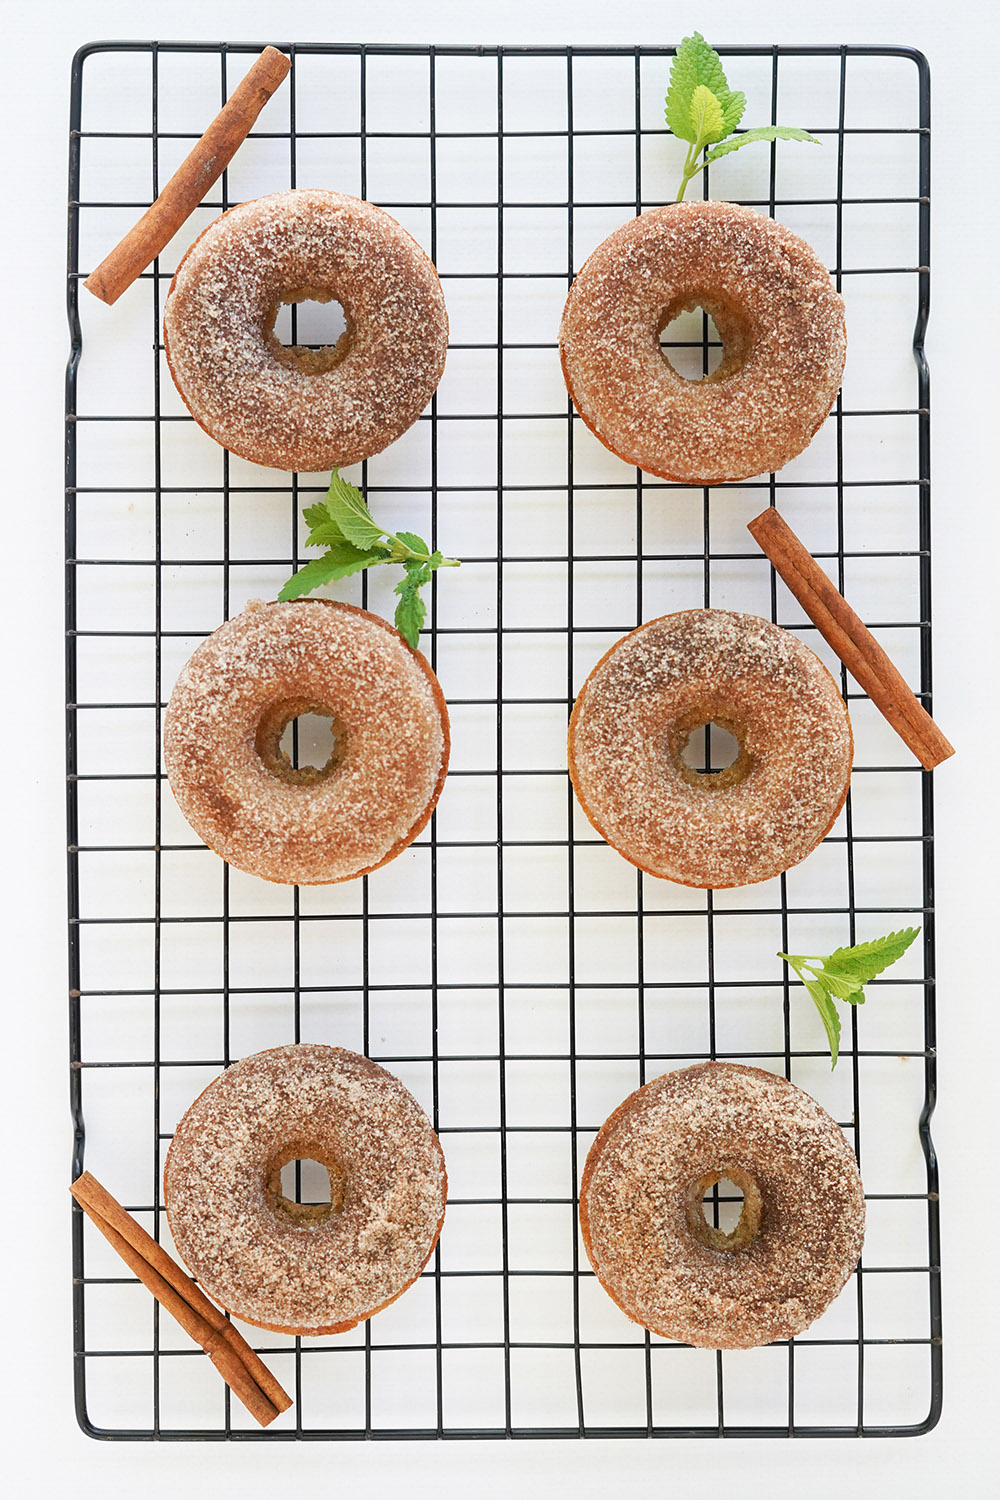 Donuts, cinnamon sticks, and green leaves on a wire rack.